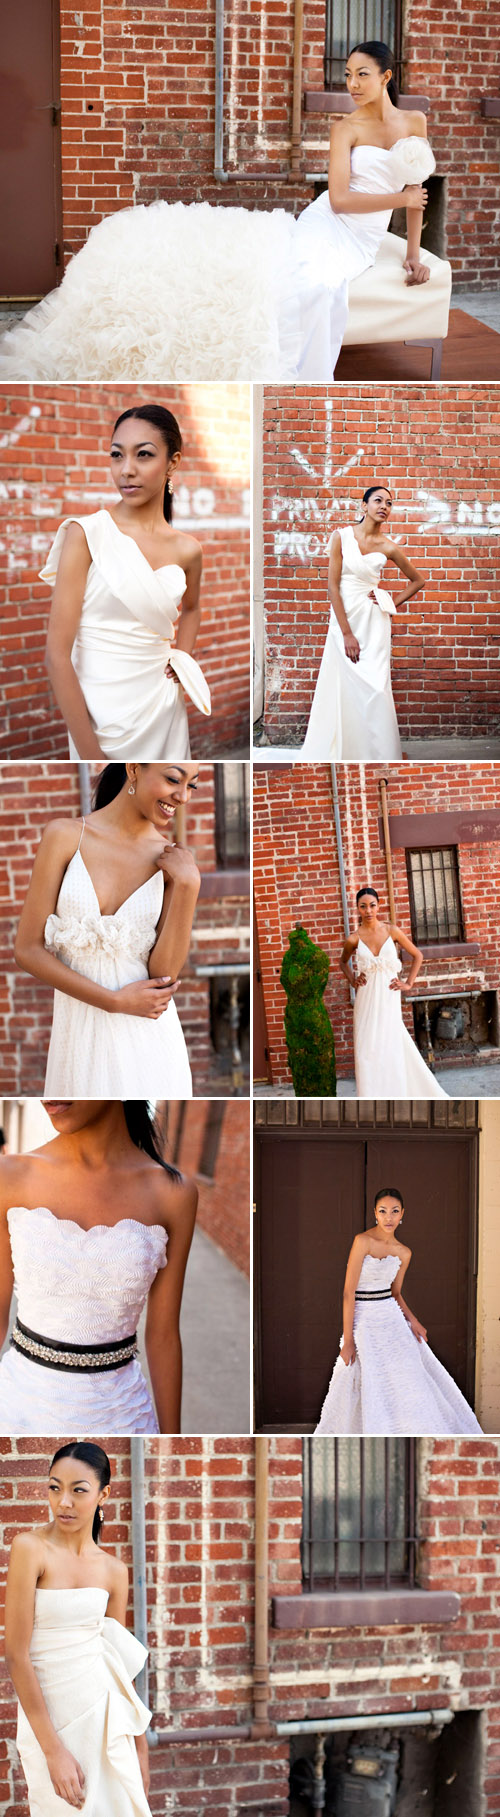 fall 2010 wedding dress collection from Alina Pizzano